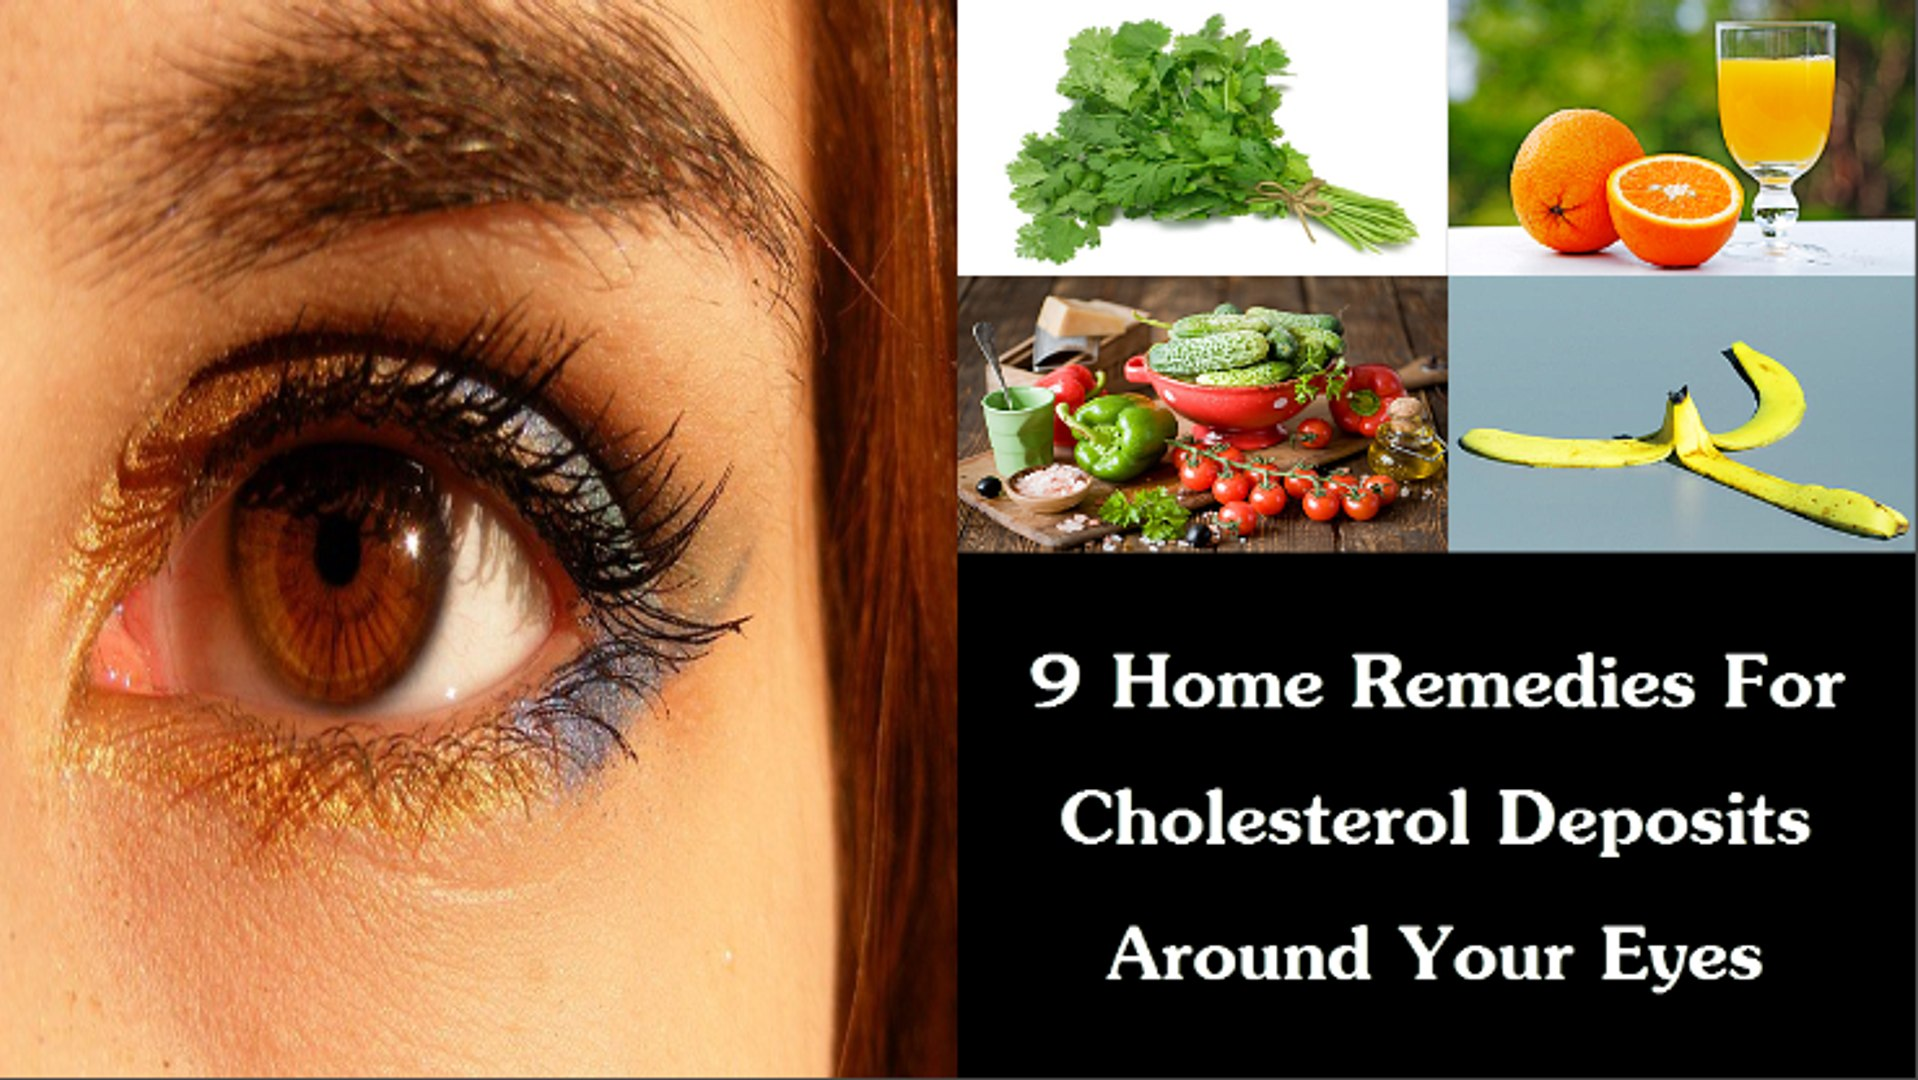 9 Home Remedies For Cholesterol Deposits Around Your Eyes